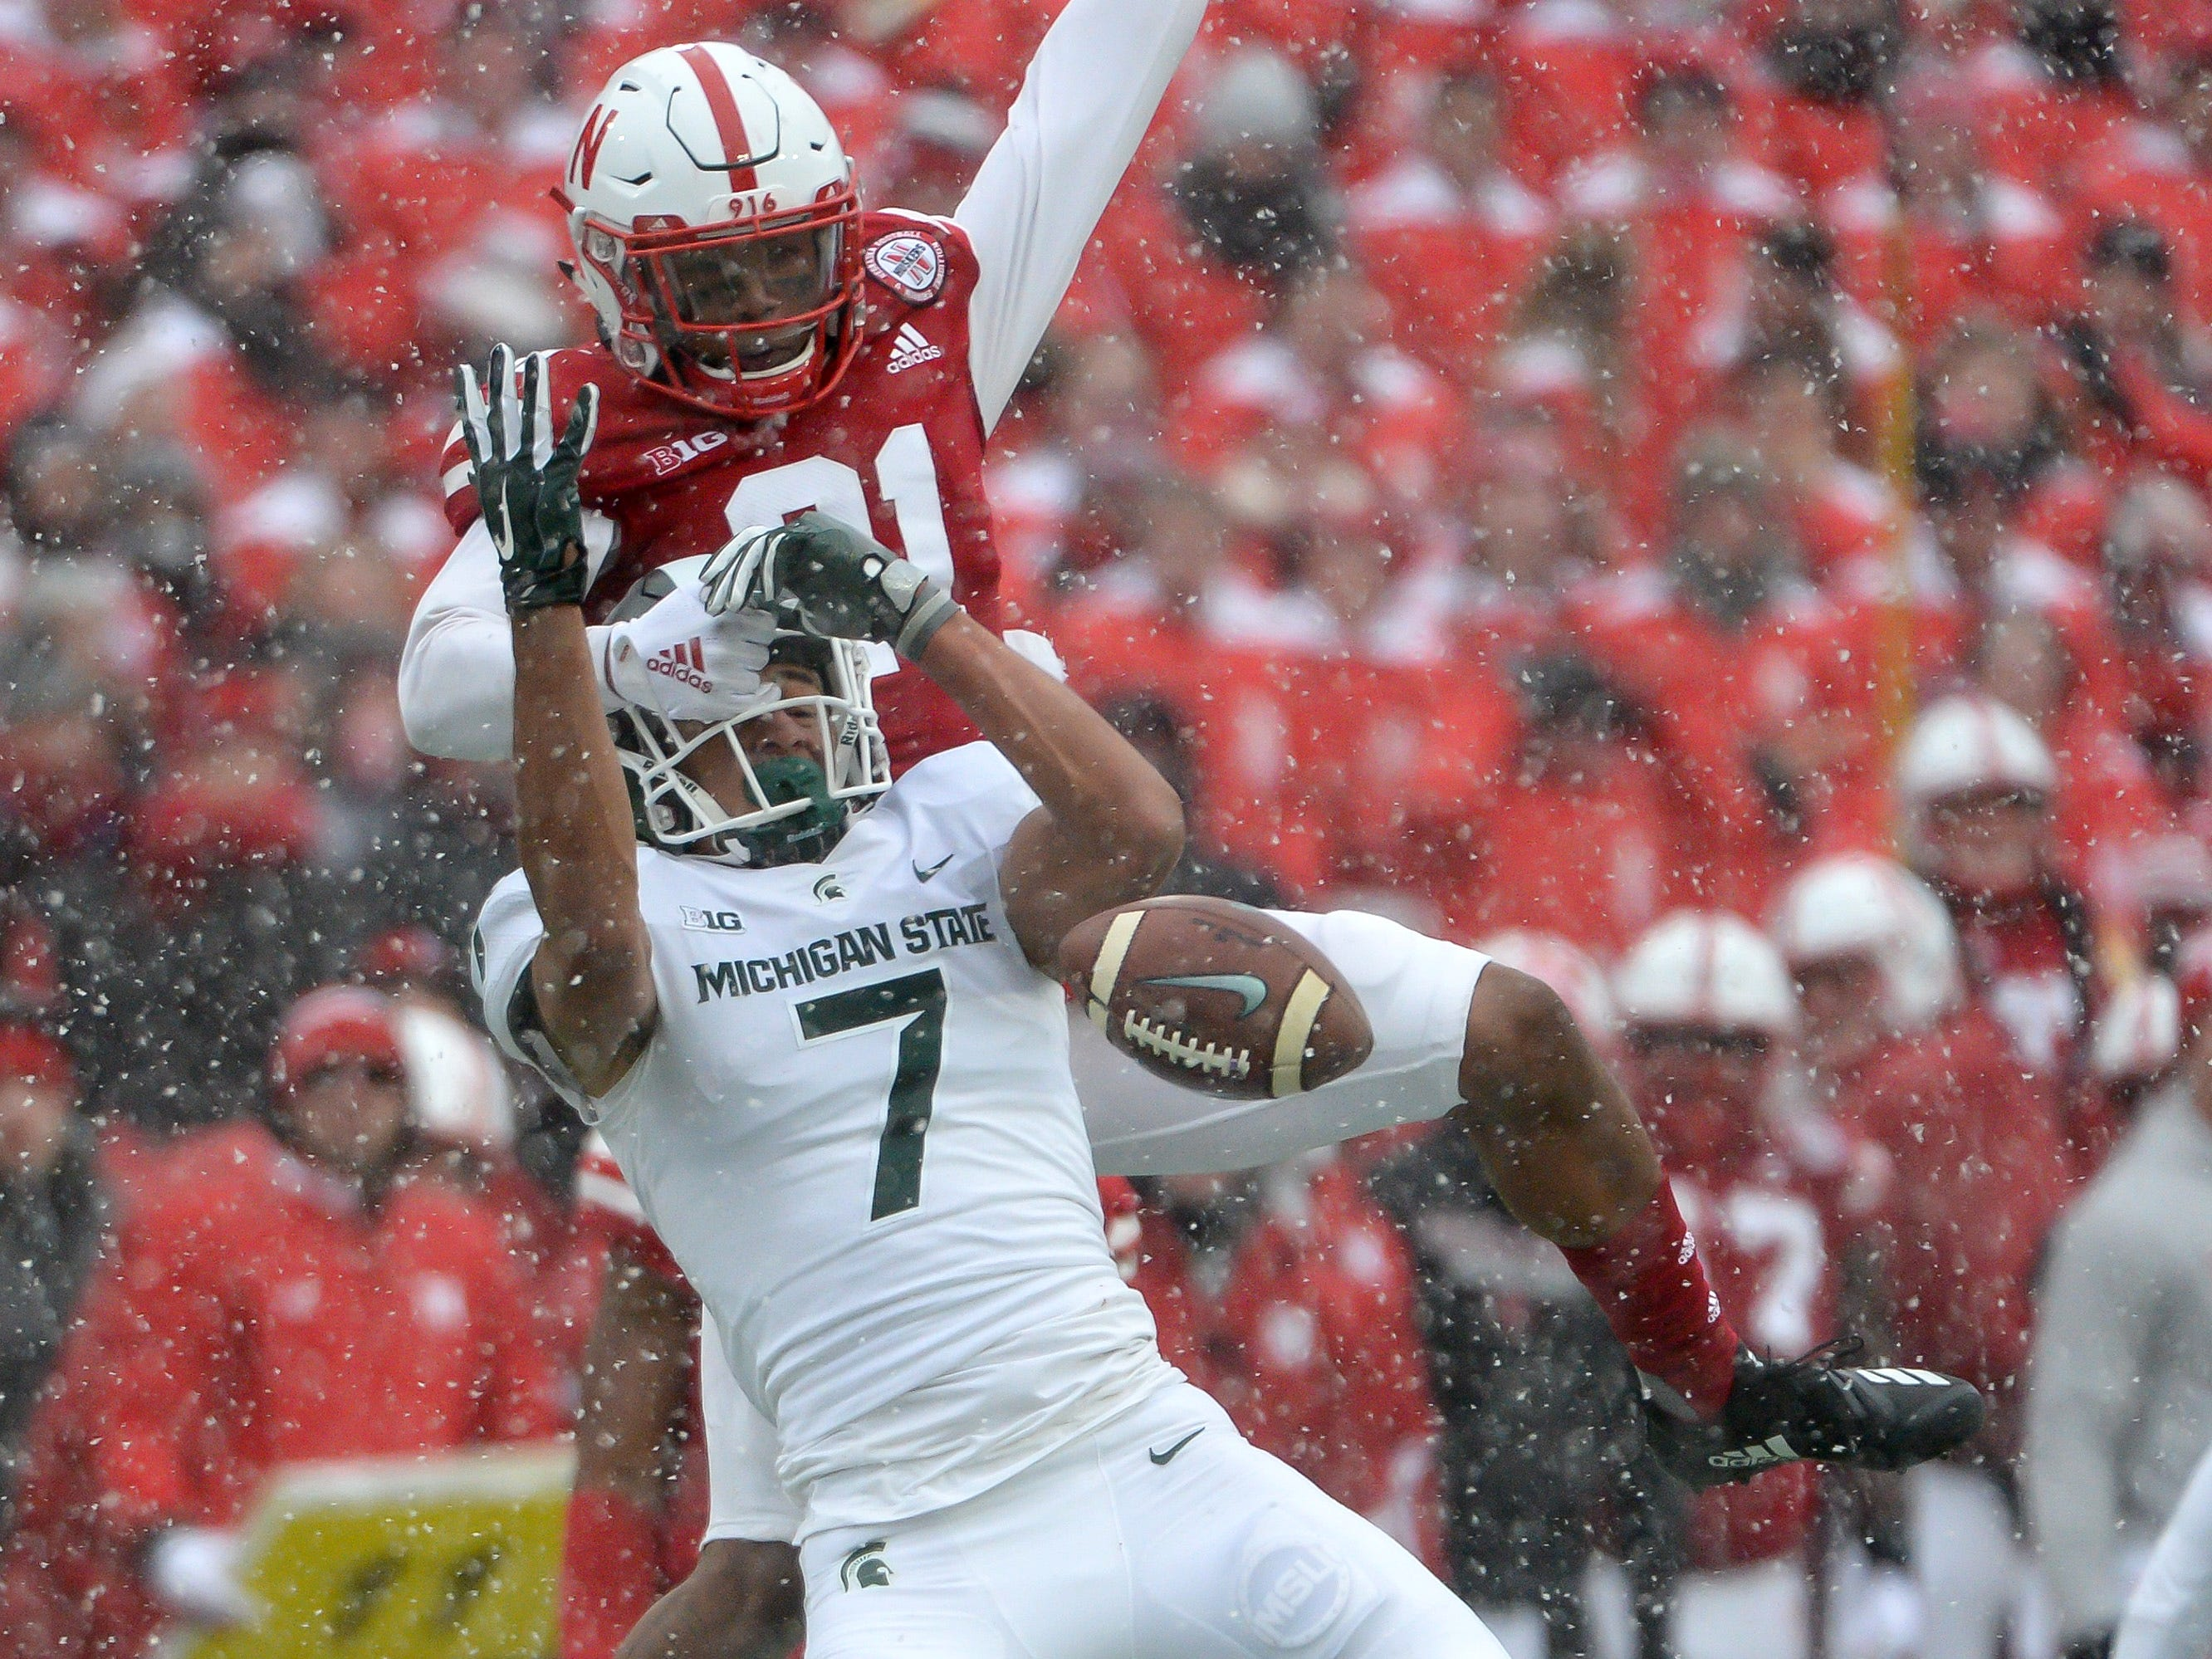 Nebraska defensive back Lamar Jackson interferes with Michigan State receiver Cody White on a pass in the second half at Memorial Stadium on Nov. 17, 2018 in Lincoln, Neb.